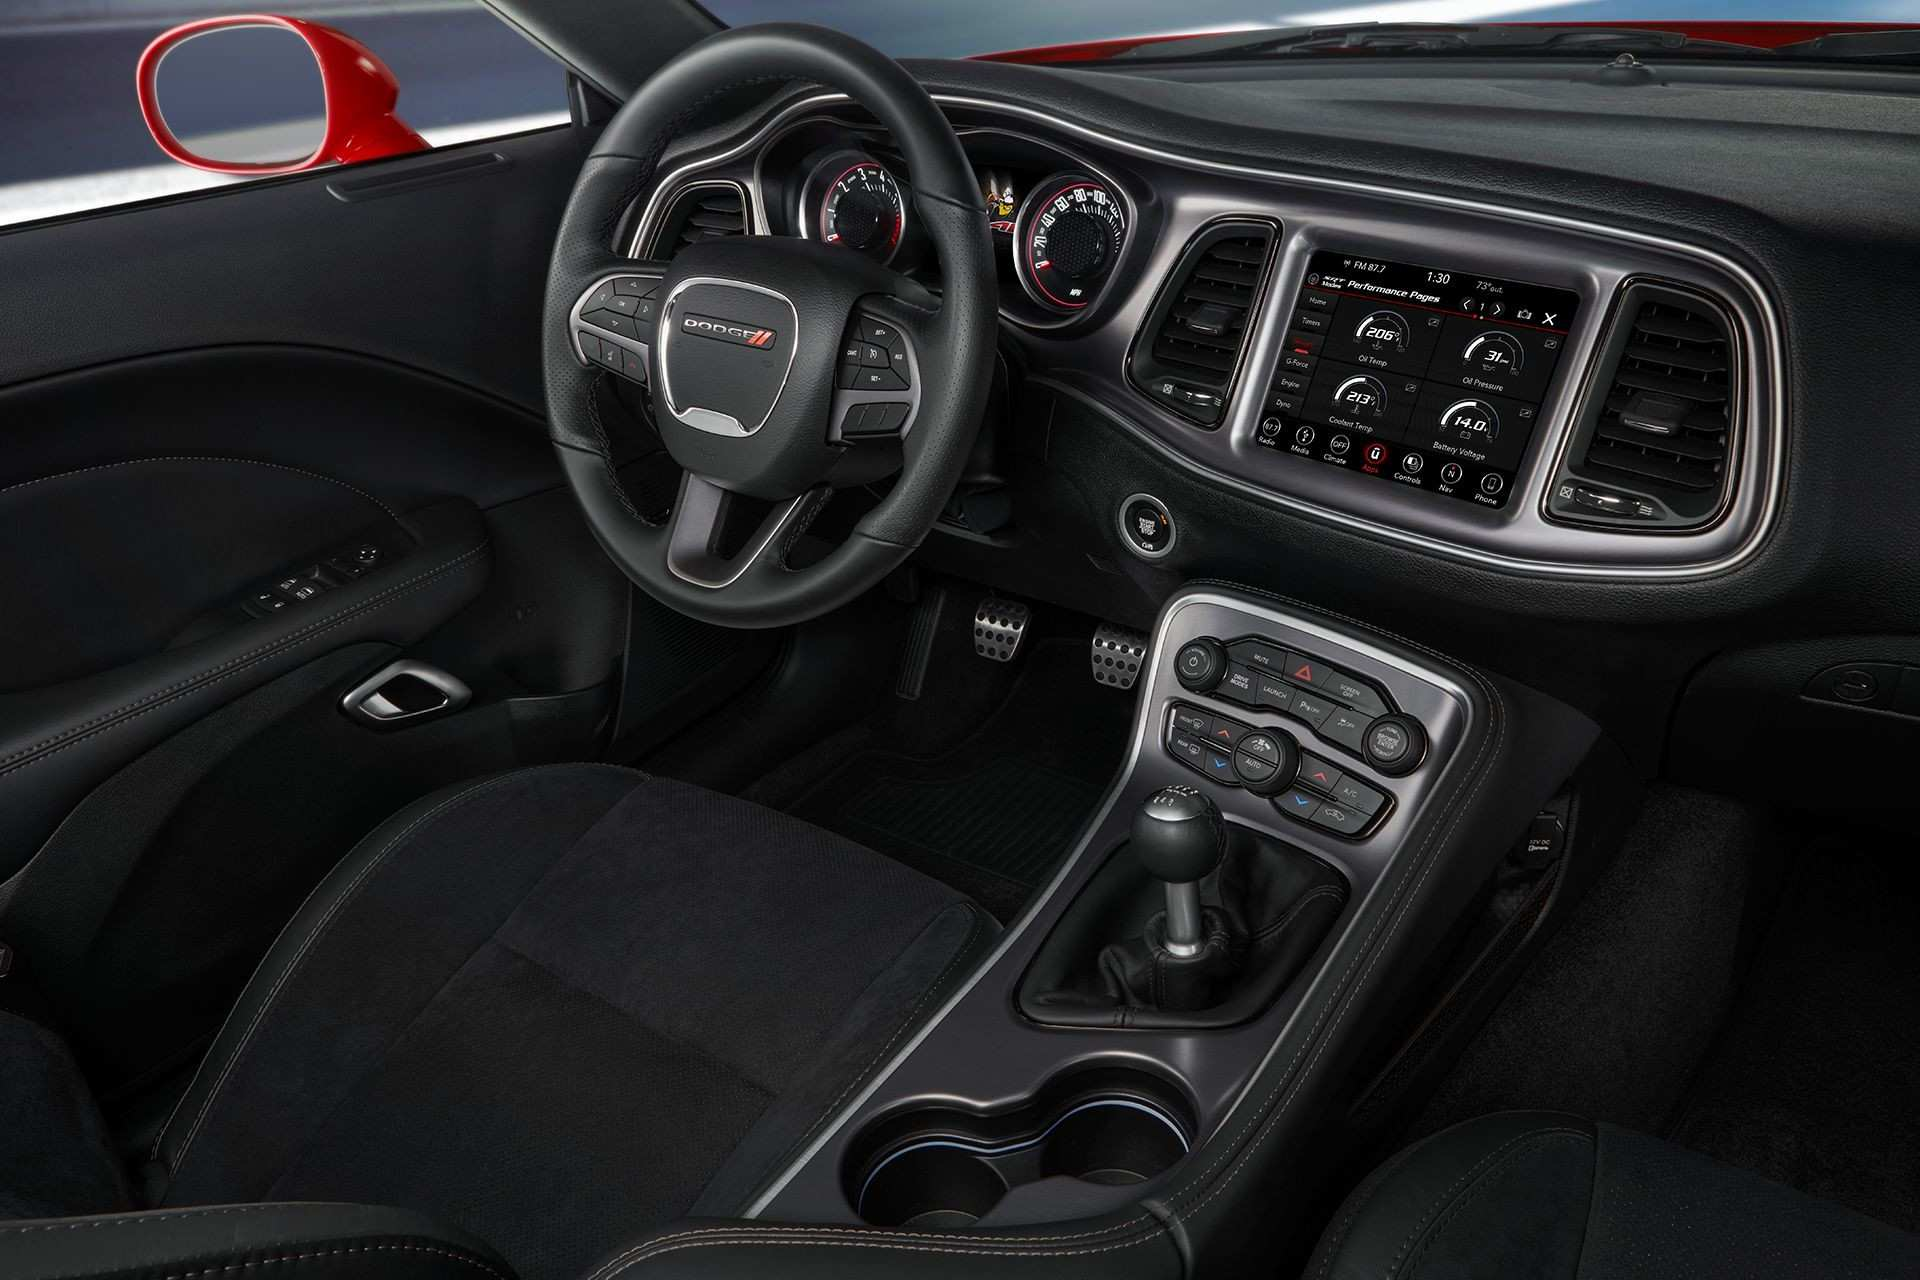 18 All New 2020 Dodge Charger Interior Specs